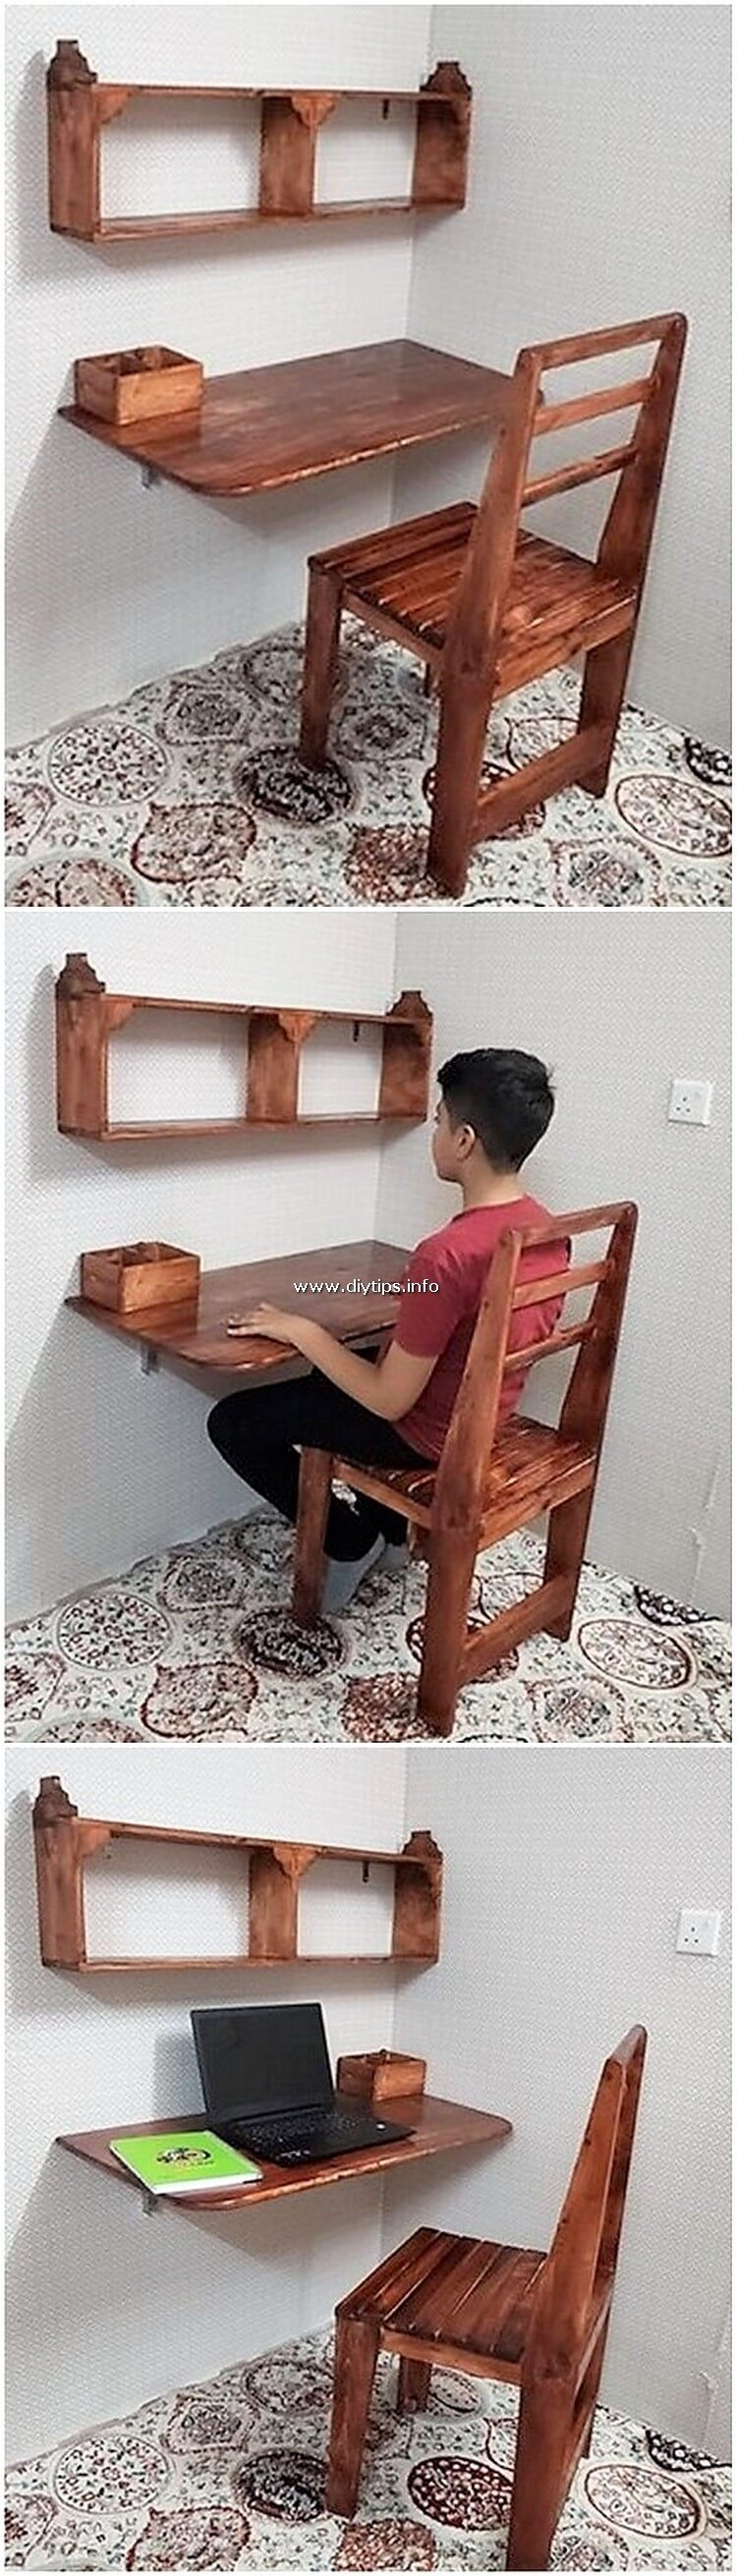 Pallet Wall Desk and Chair